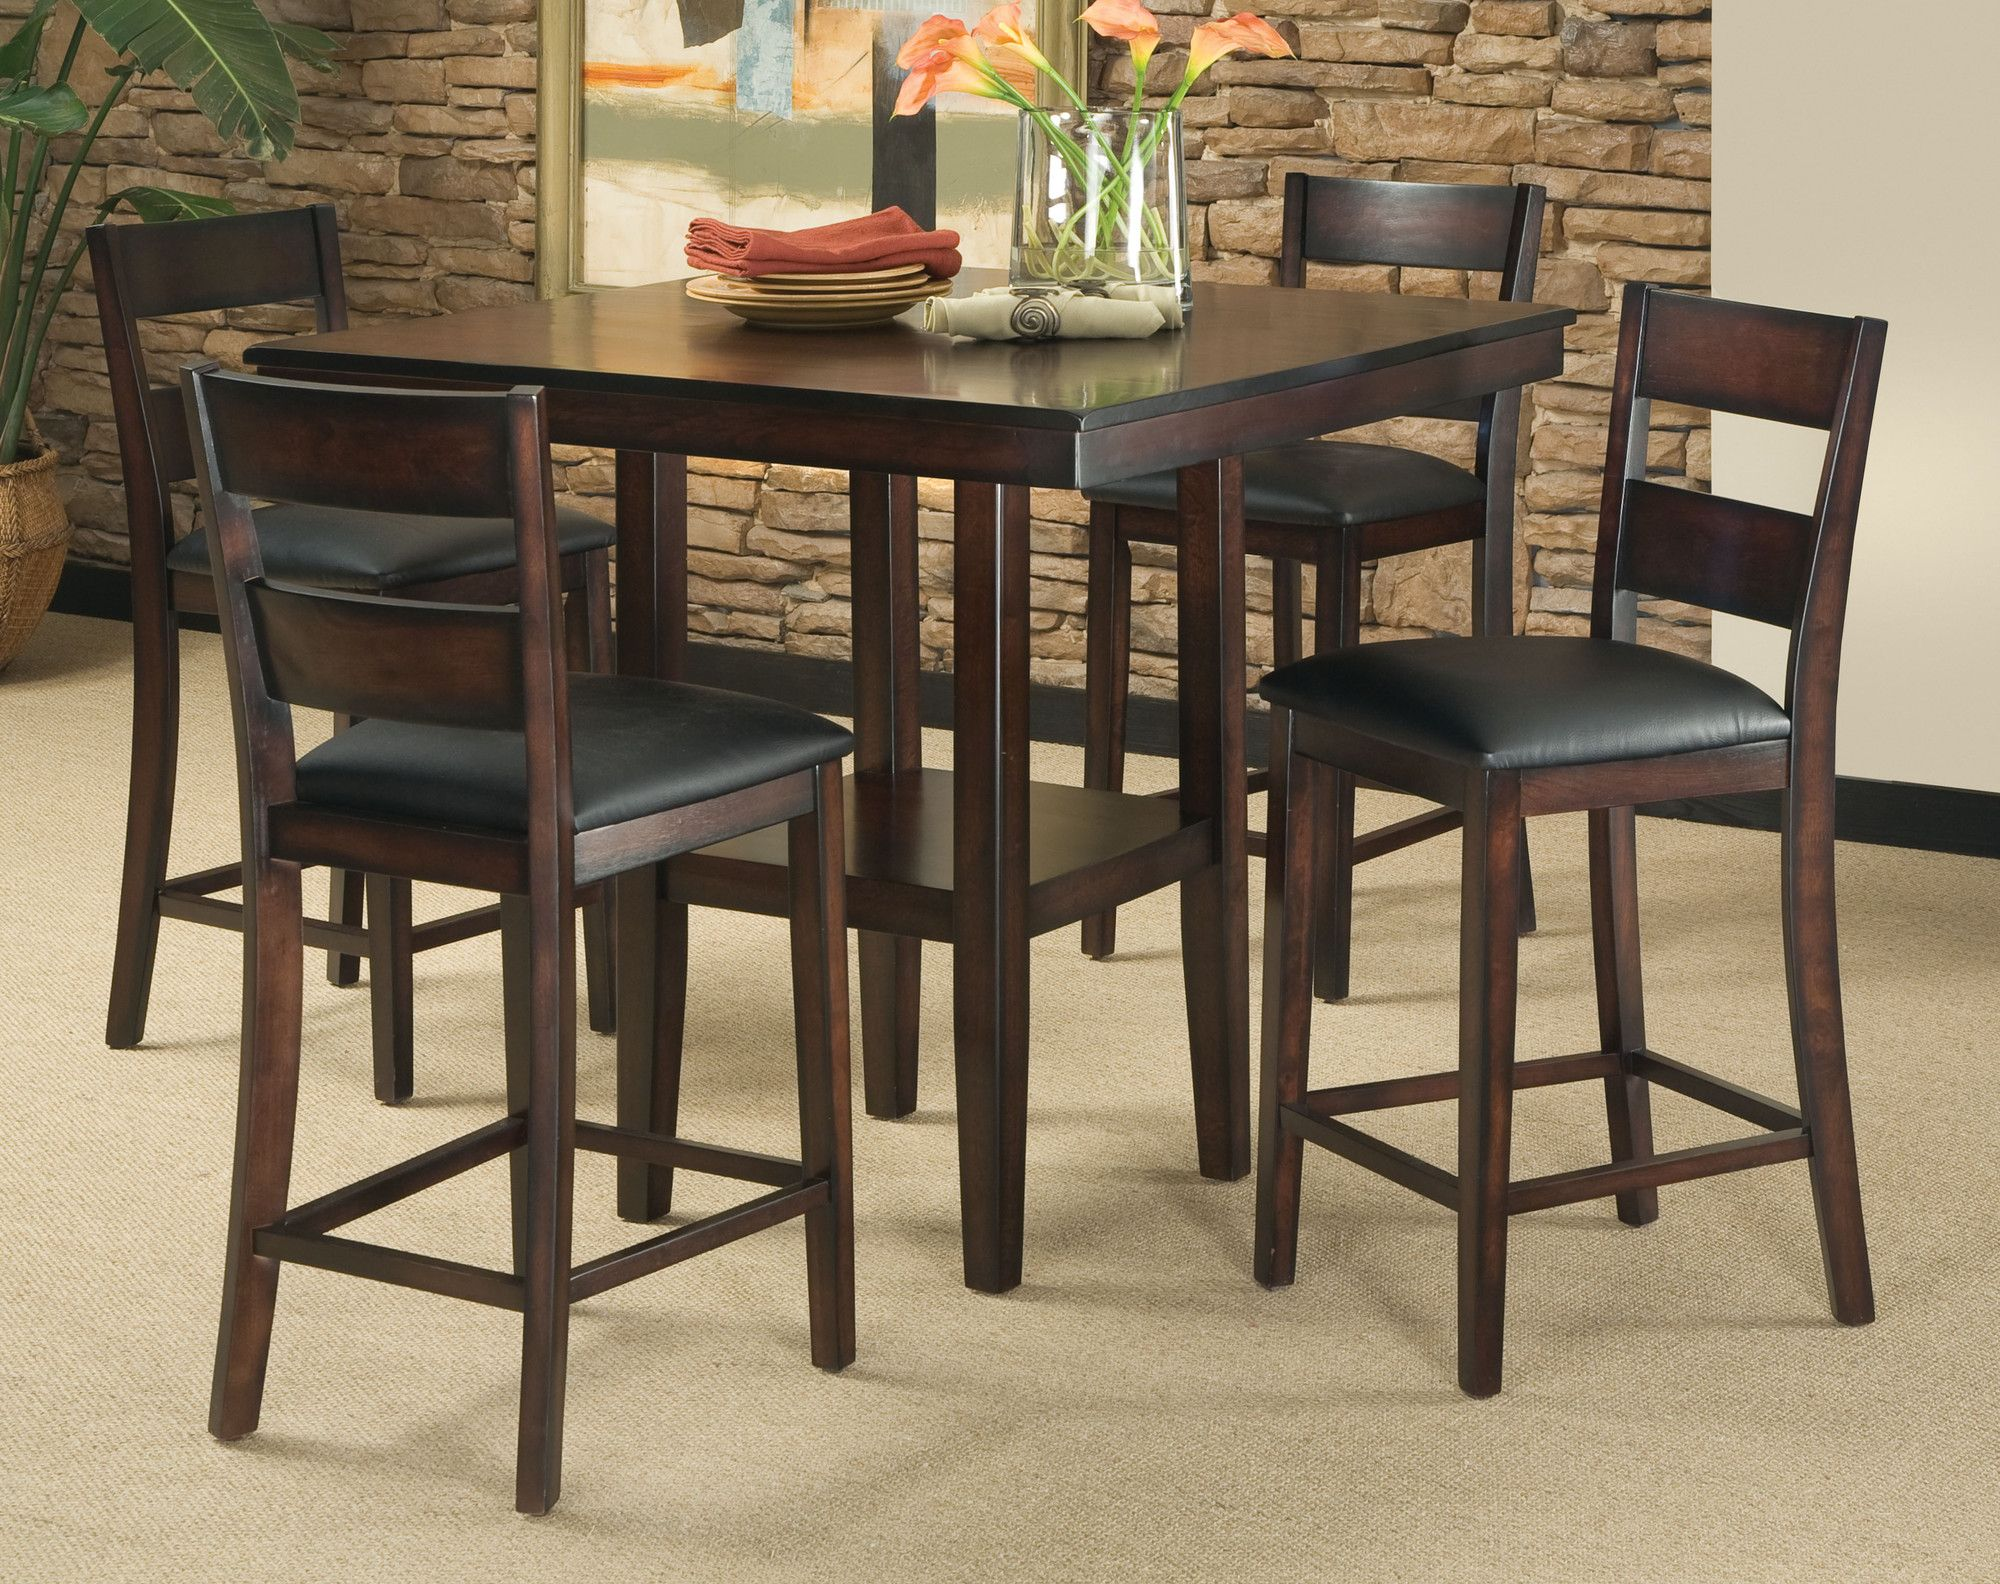 Small Counter Height Dinette Sets | ... Counter Height Dining Room Set Table Chair : pub dining room table sets - pezcame.com